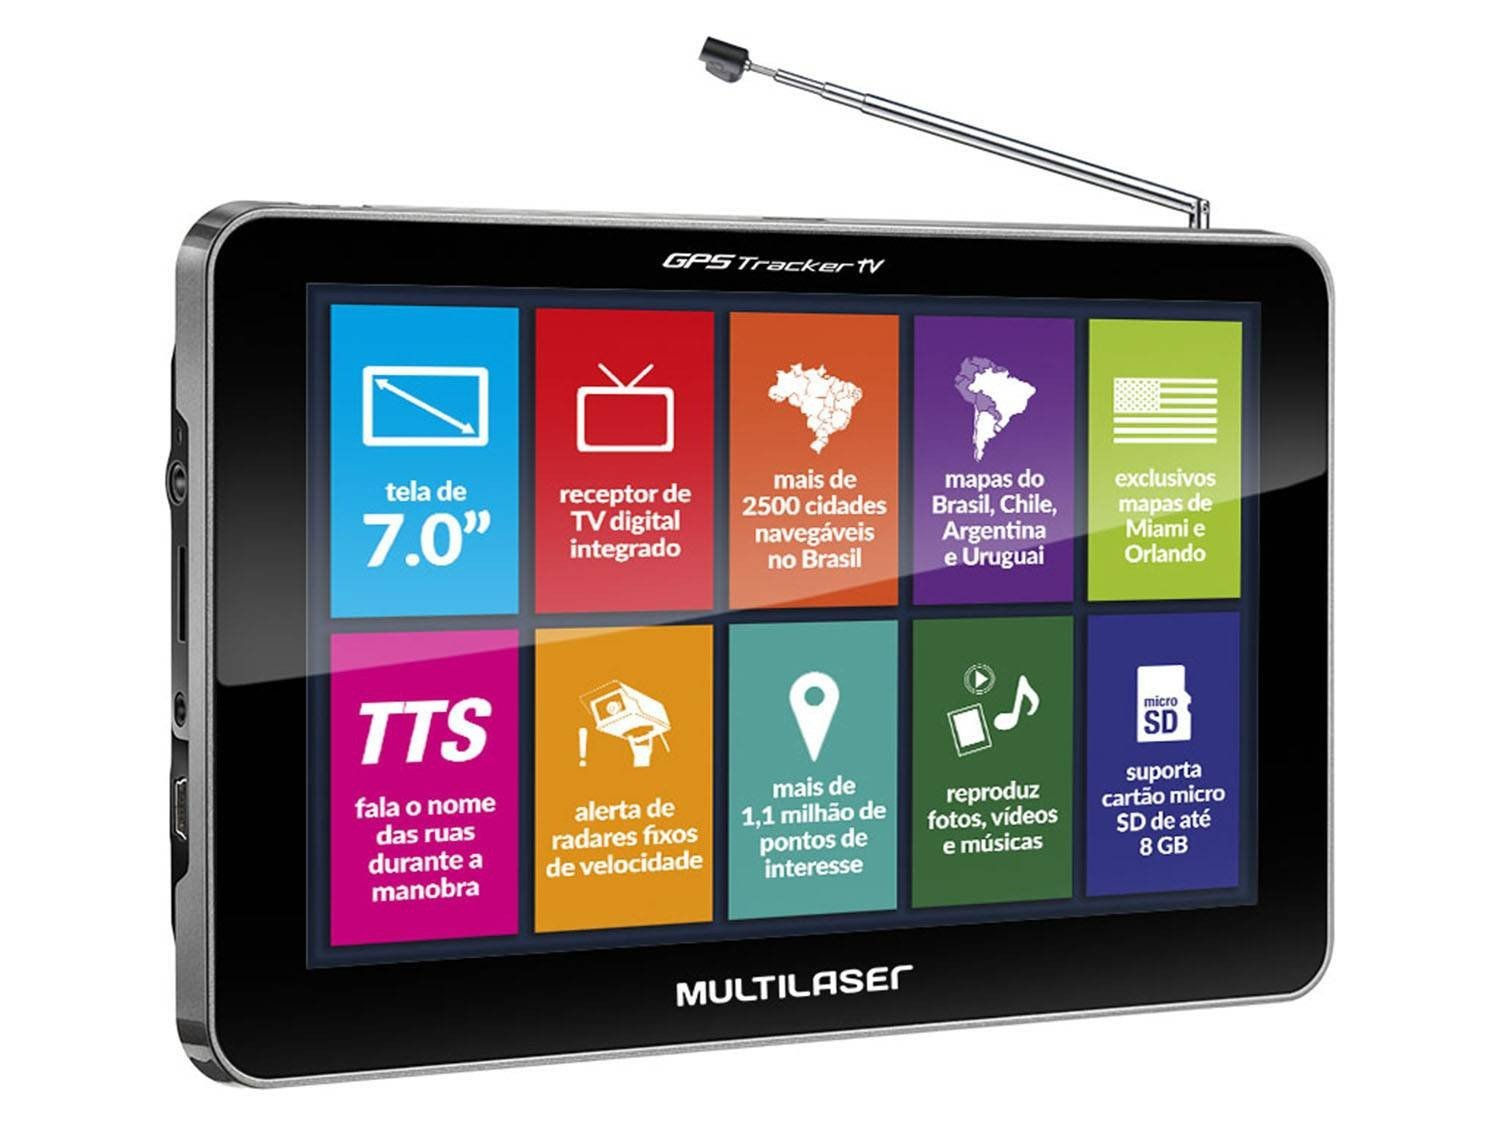 gps-automotivo-multilaser-tracker-tv-tela-7-touch-tv-digital-2500-cidades-navegaveis